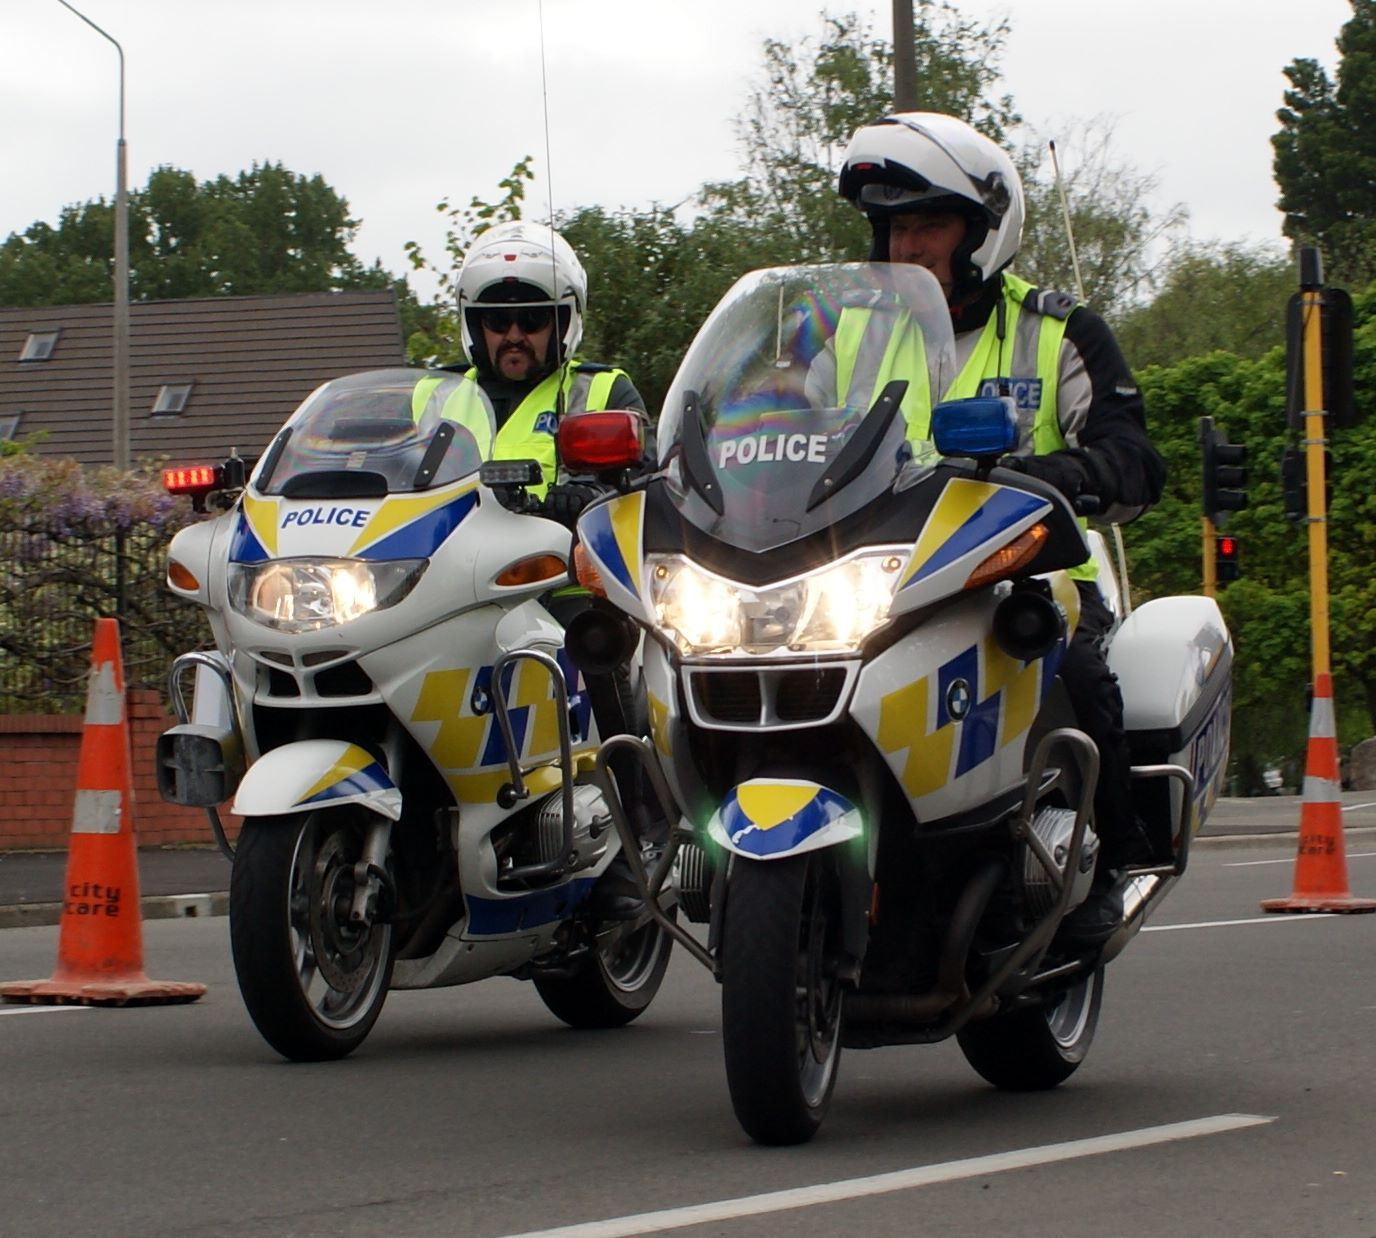 hight resolution of christchurch police bmw r1150rt p and bmw r1200rt p source http www 111emergency co nz